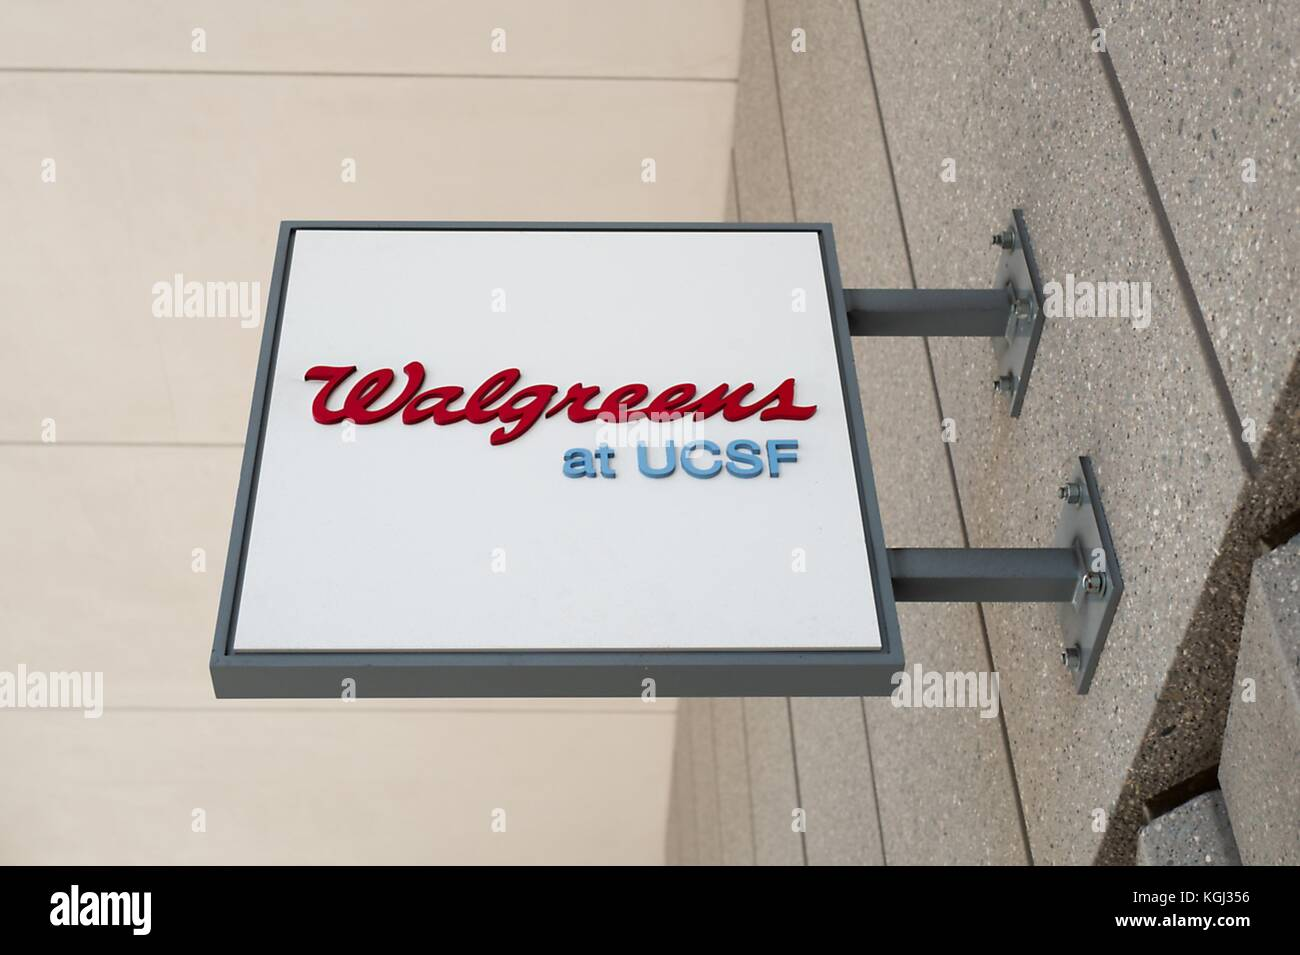 Walgreens Stock Photos & Walgreens Stock Images - Alamy